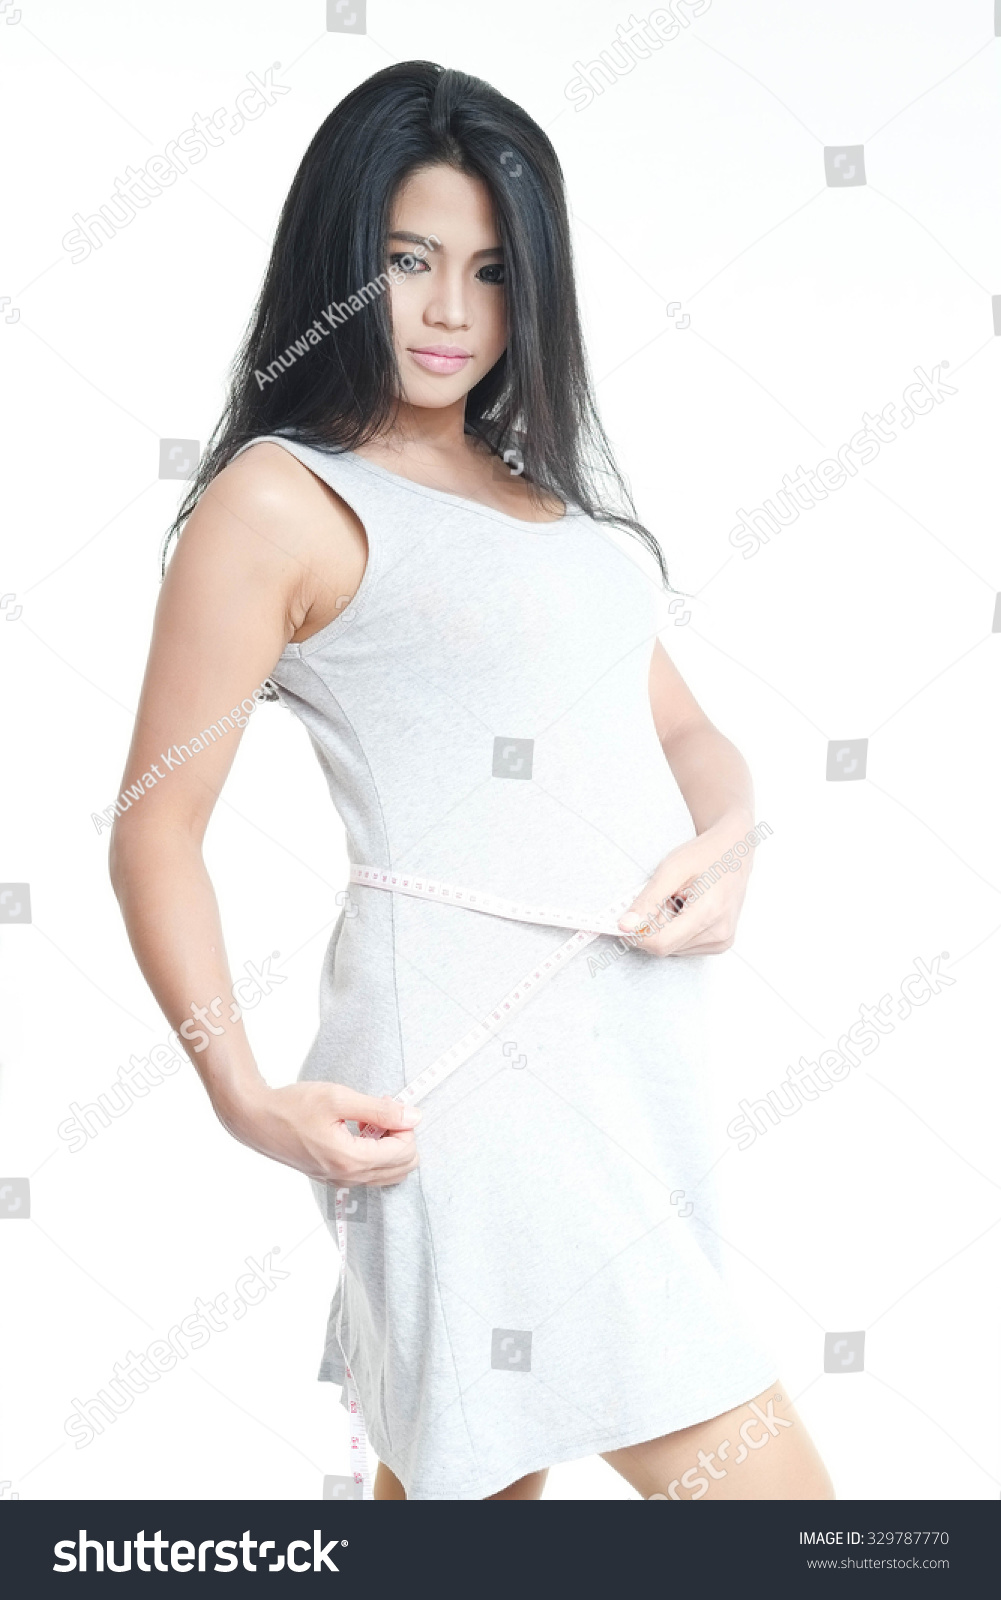 ccbe24a2b69b5 Asian pregnancy woman measurement her belly on white isolate background.